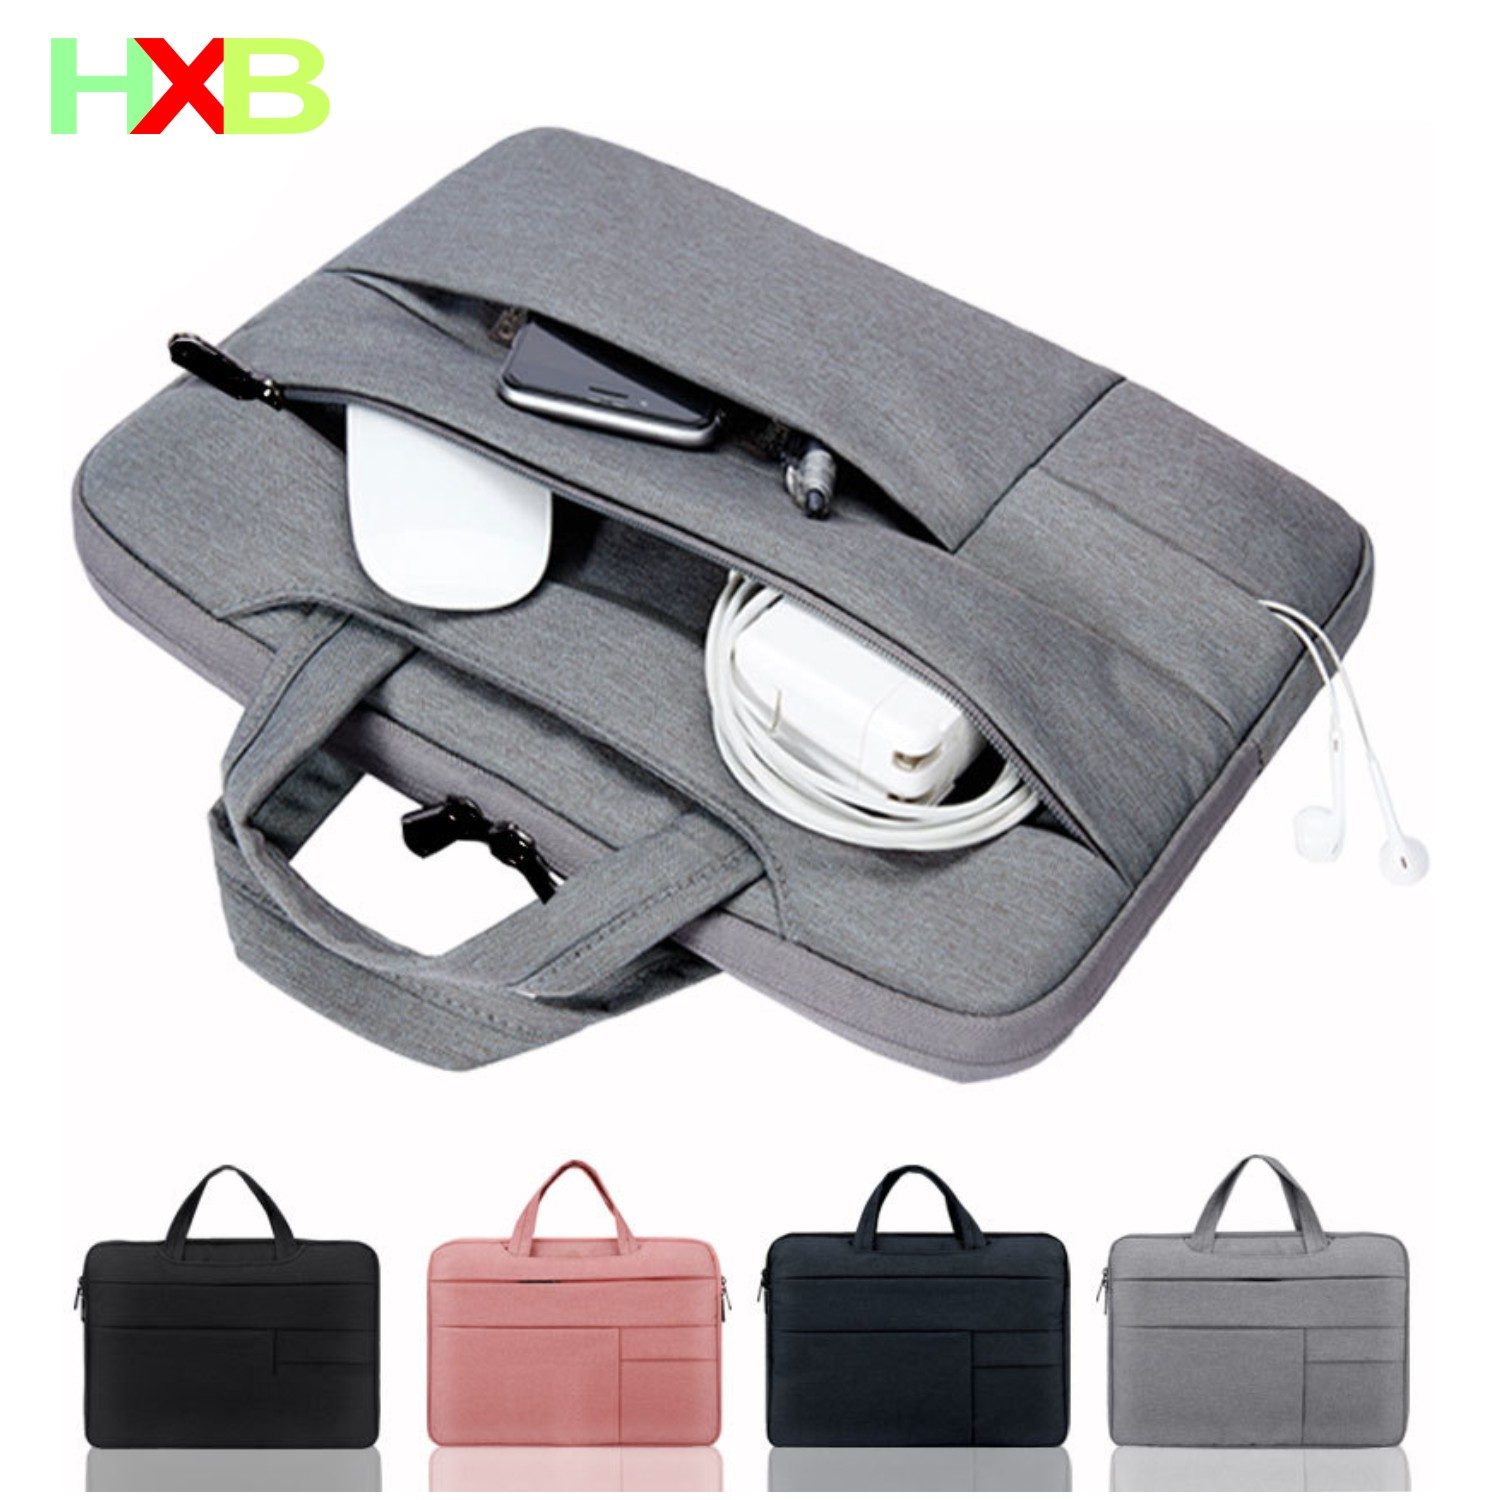 XHB Laptop Case PC air 13 Notebook Bag Waterproof Tablet Sleeve For Macbook Pro Air 11 12 13.3 14 15 Dell Asus HP Lenovo Surface